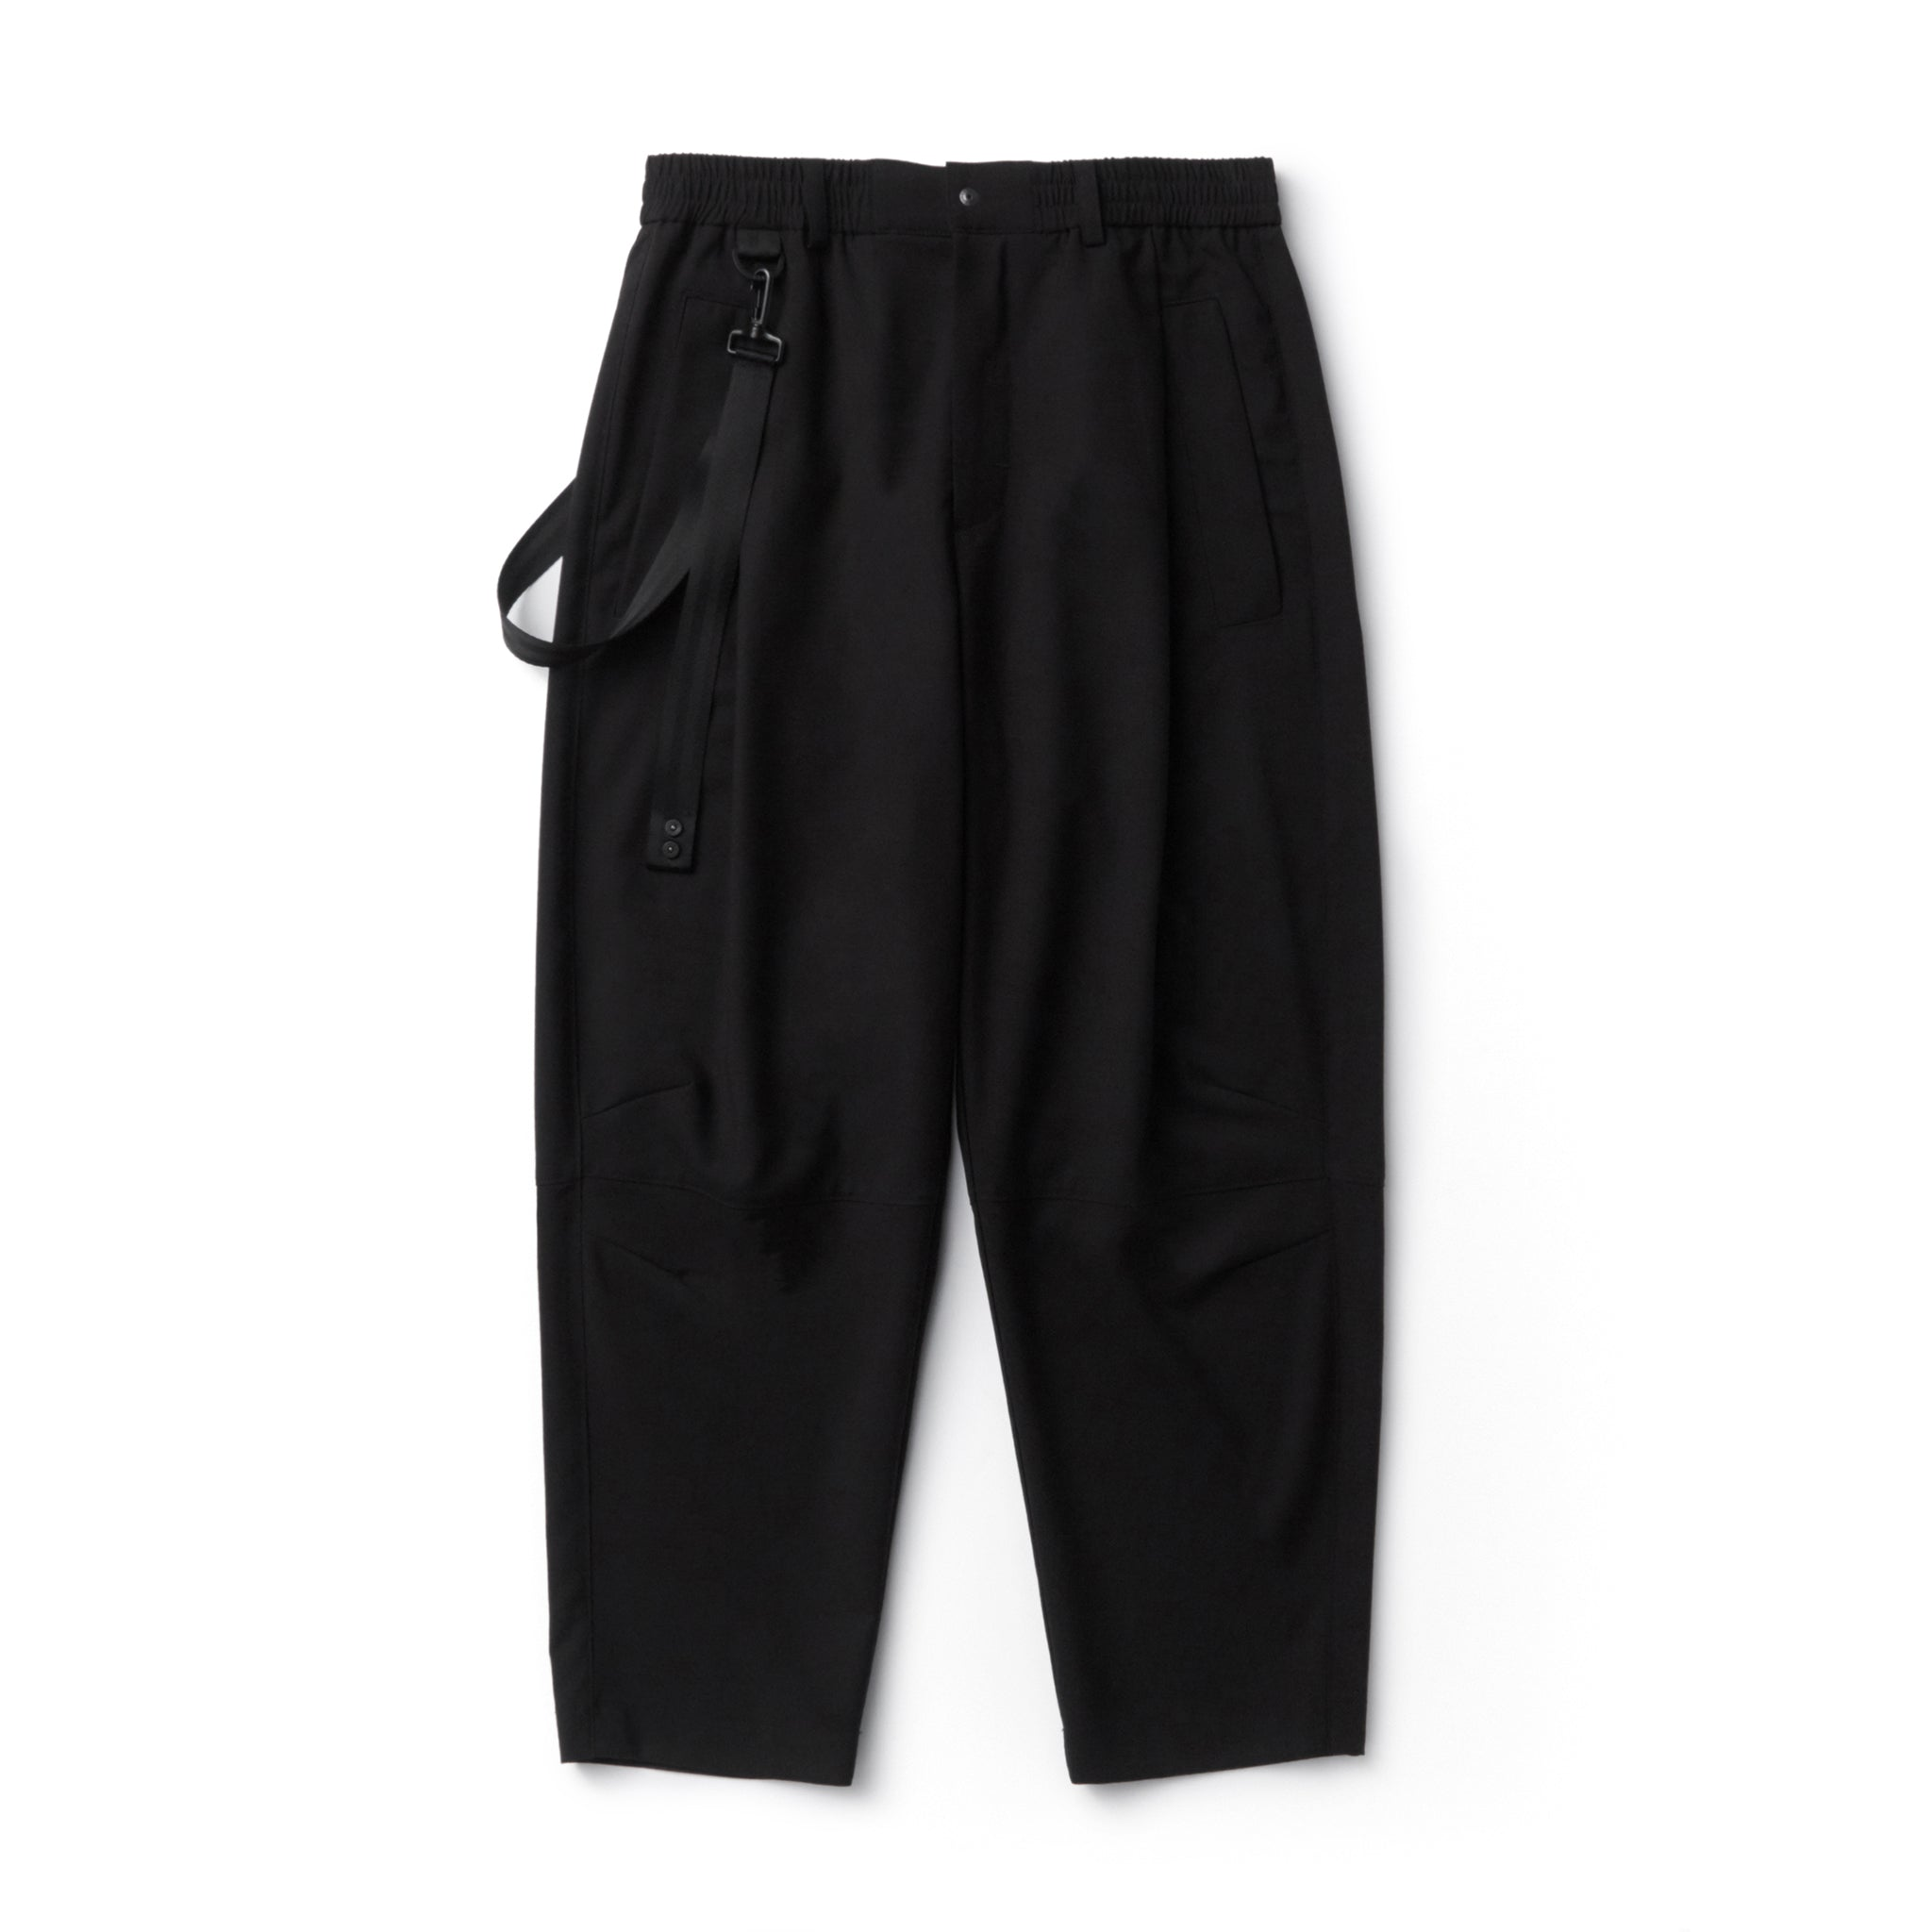 IISE Cropped Pants Black